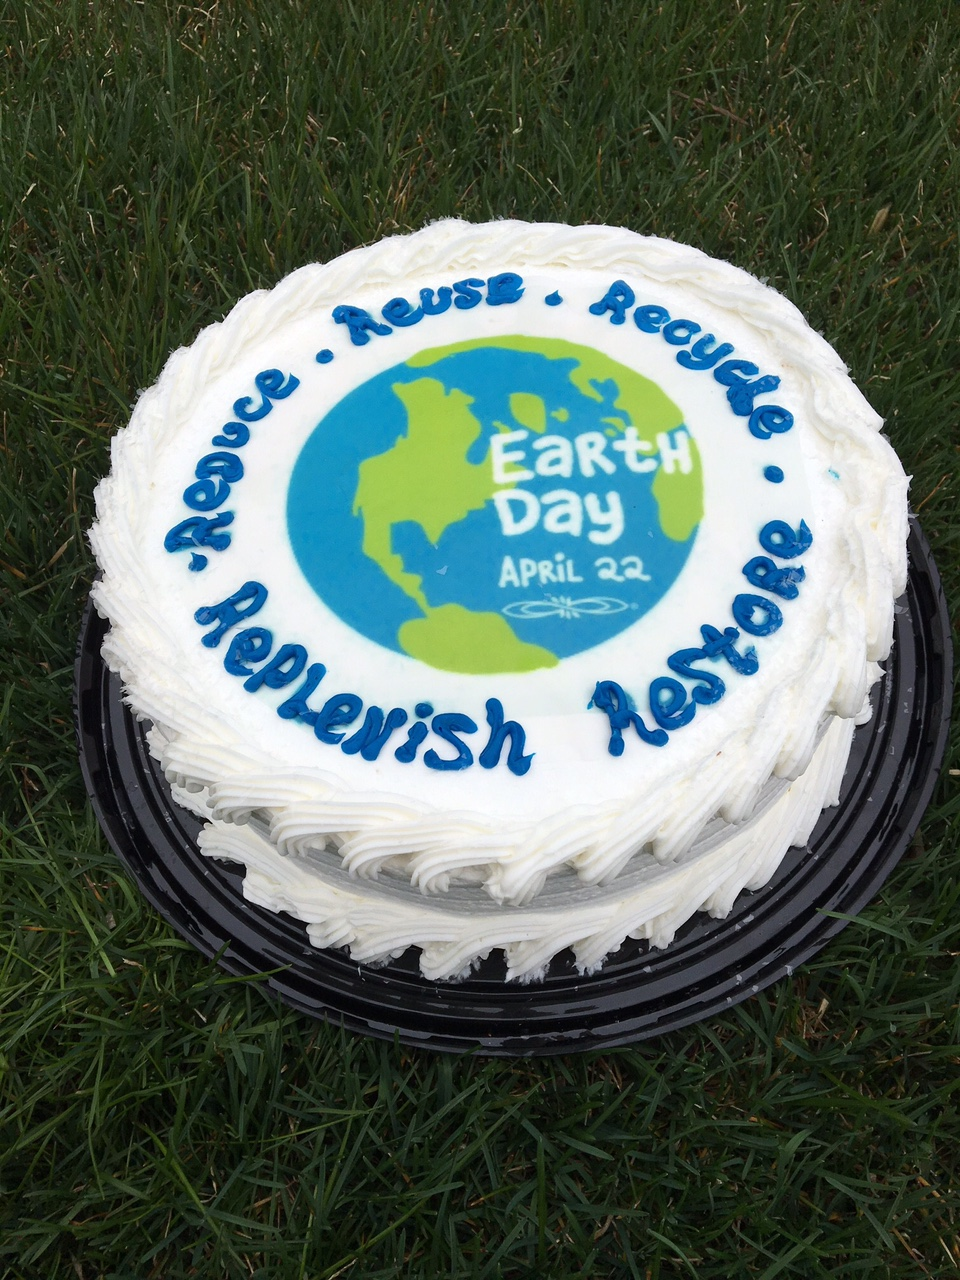 Happy Birthday Earth Day cake